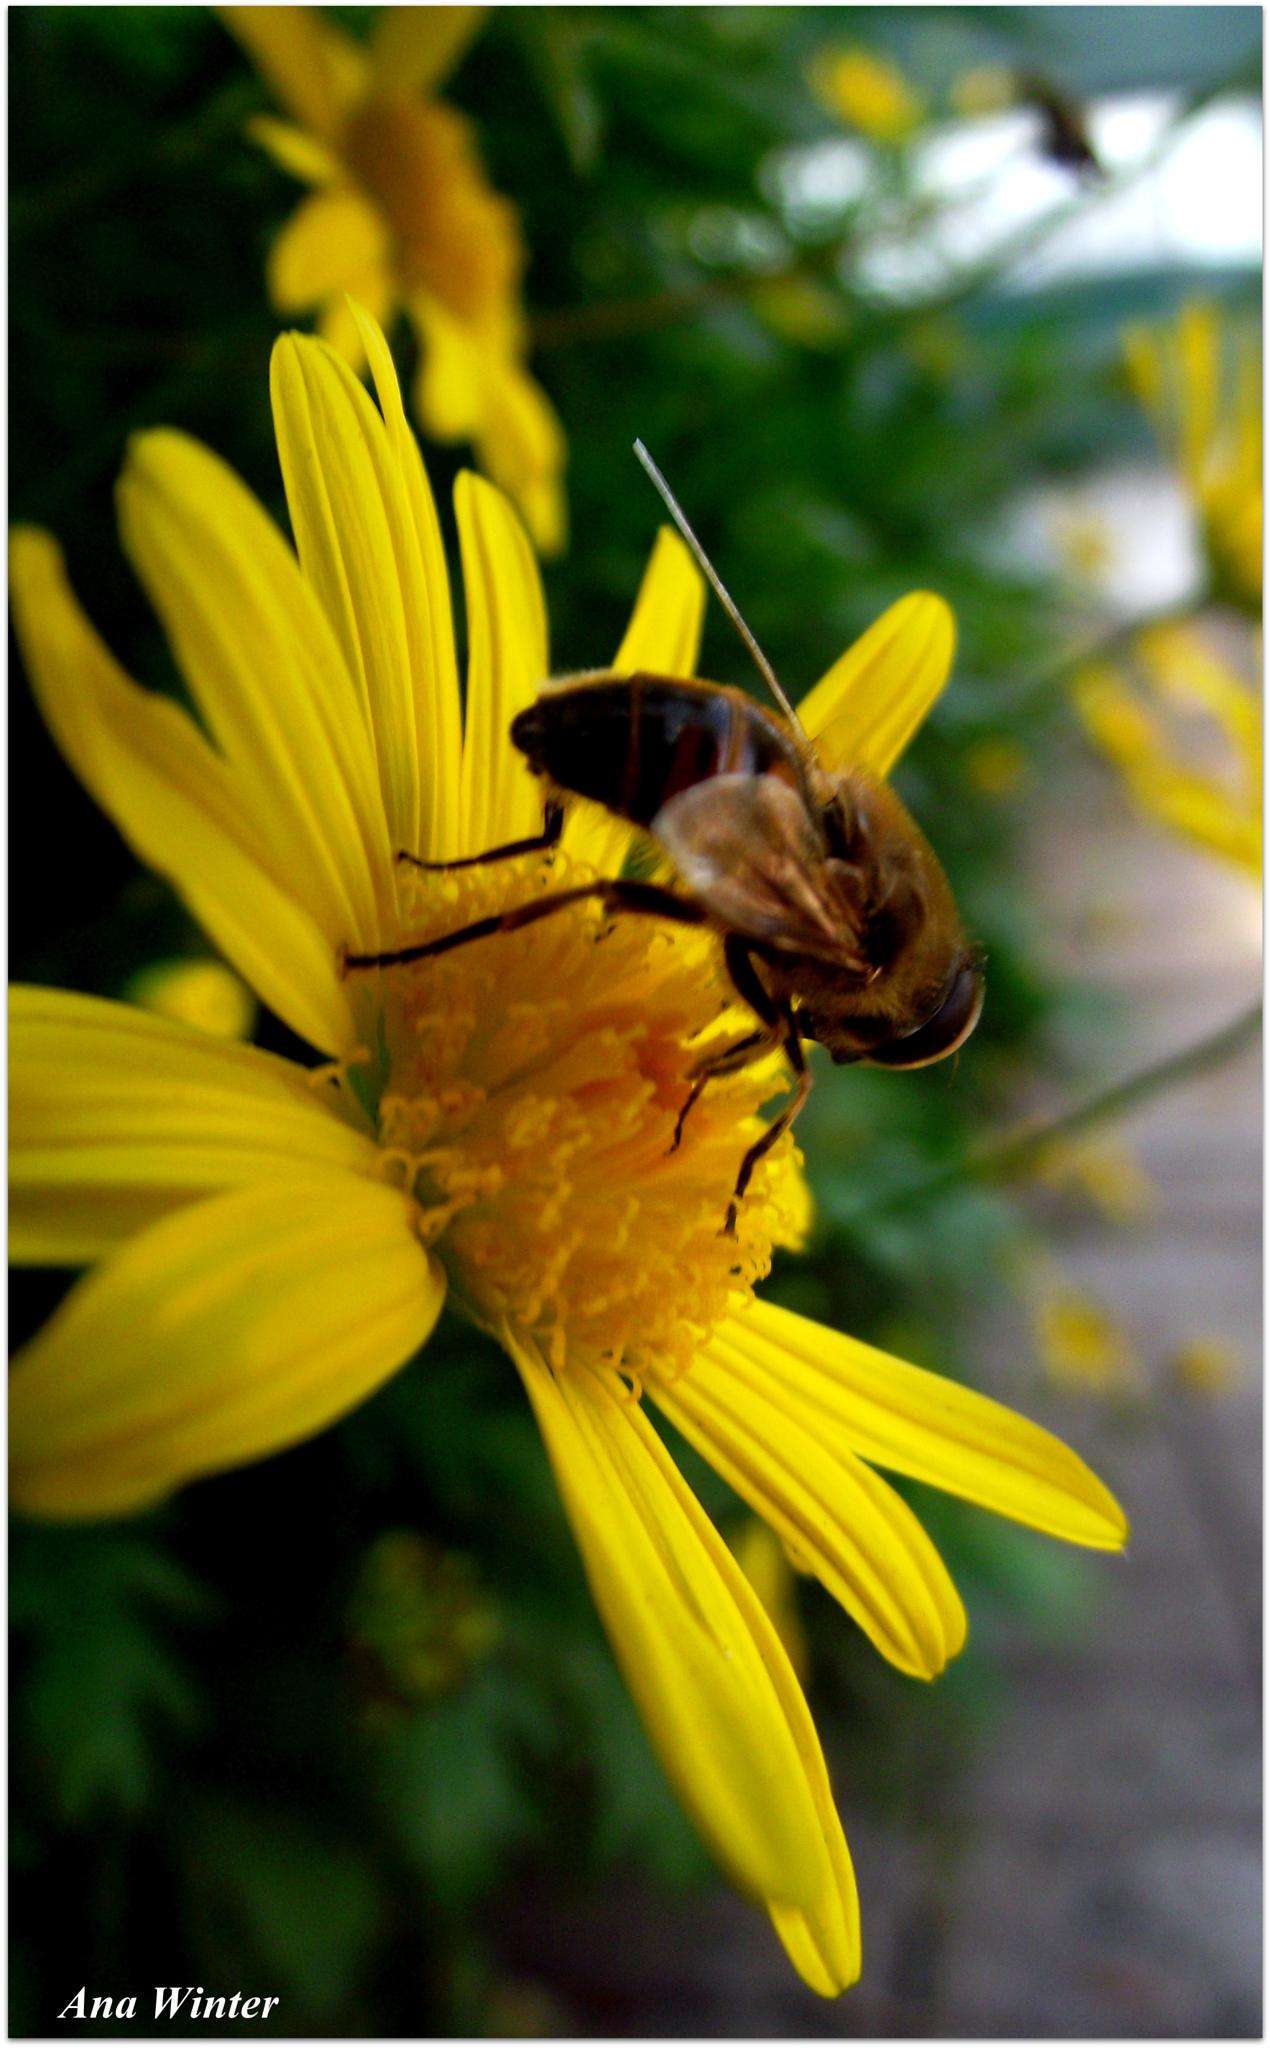 The busy Bee by Ana Winter